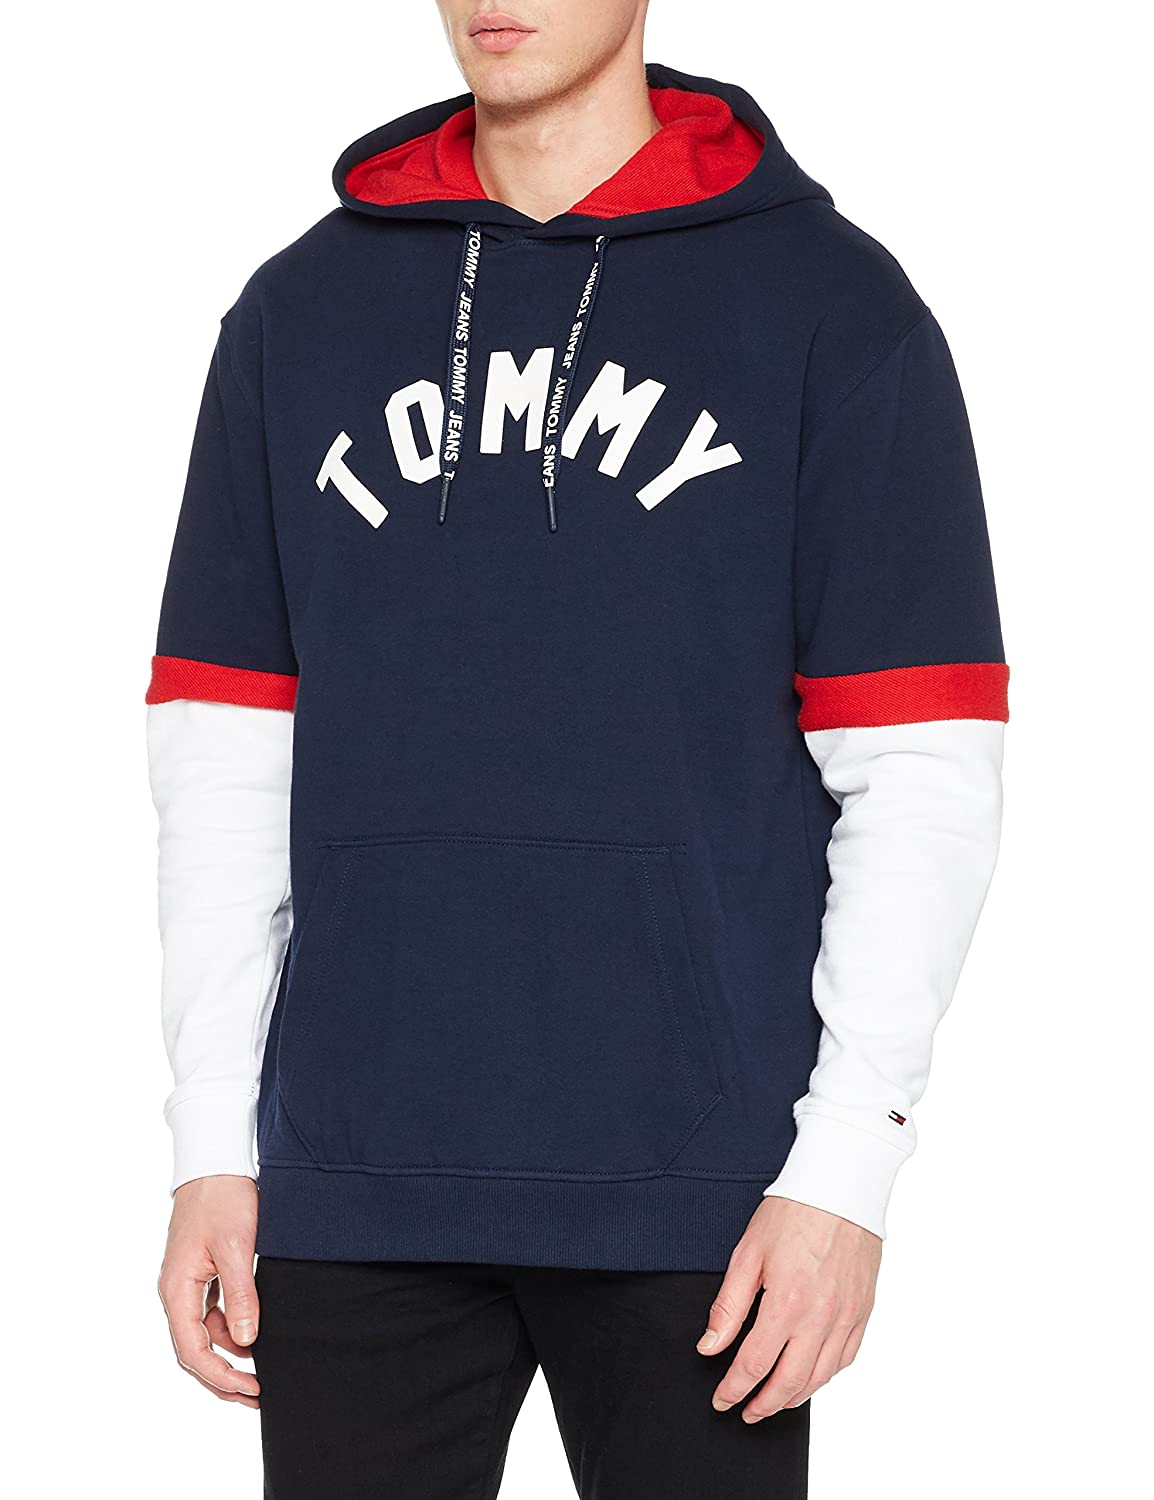 TALLA L. Tommy Jeans Hombre Colorblock Hoodie sudadera Manga Larga